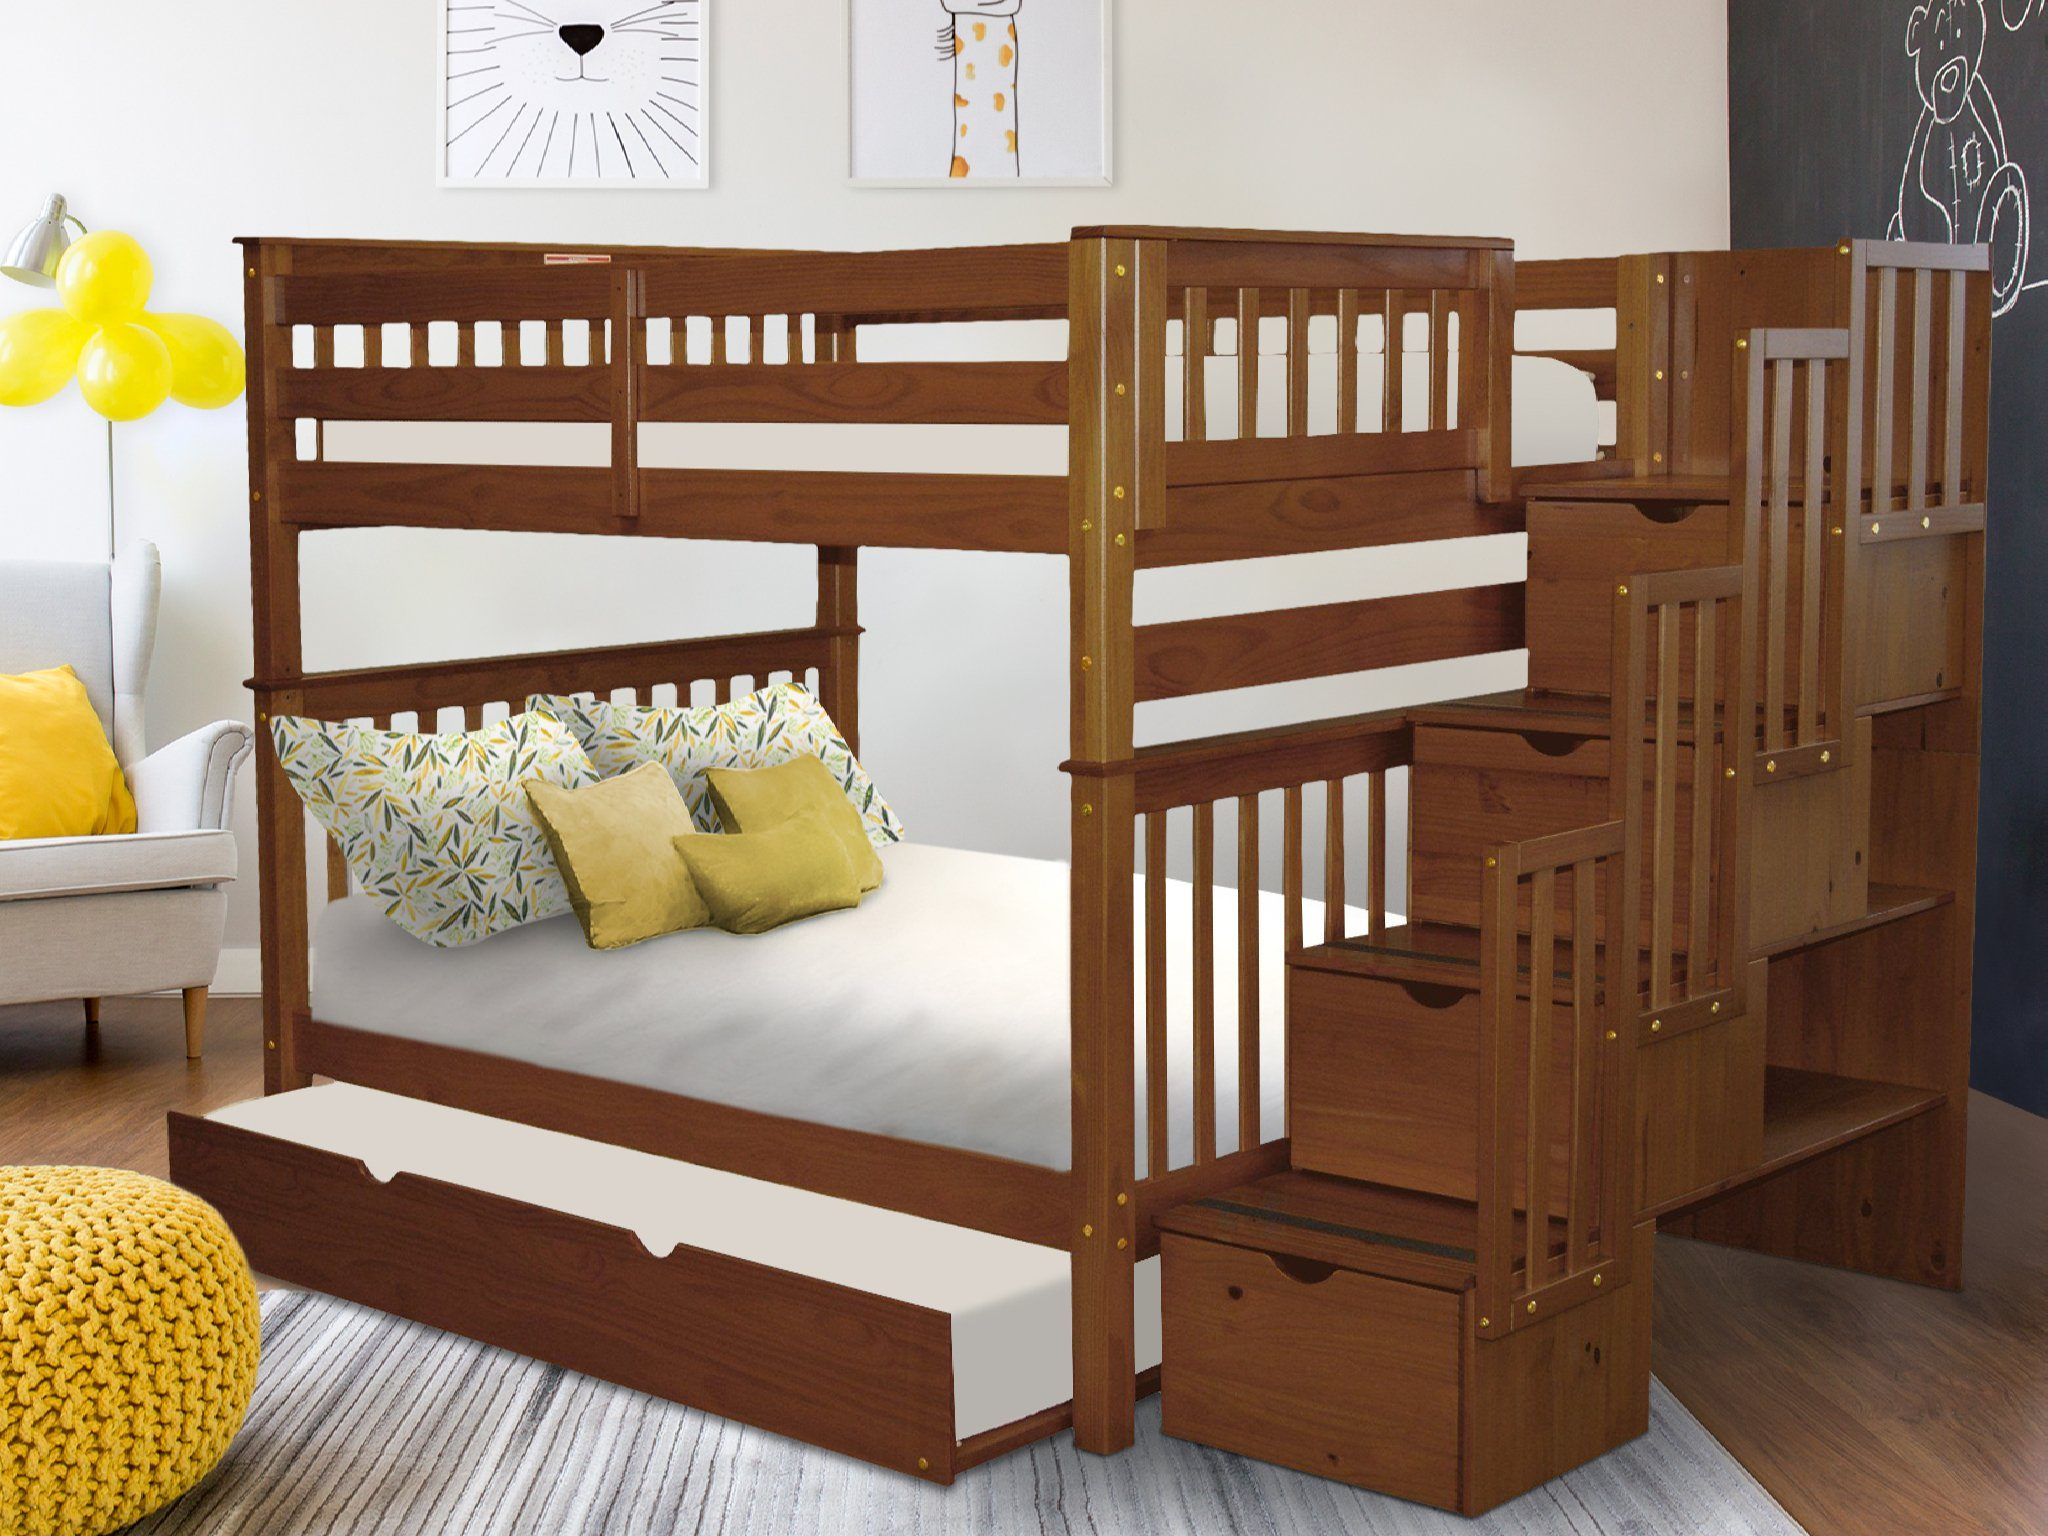 Bedz King Stairway Bunk Beds Full Over Full With 4 Drawers In The Steps And A Twin Trundle Espresso Walmart Com Walmart Com